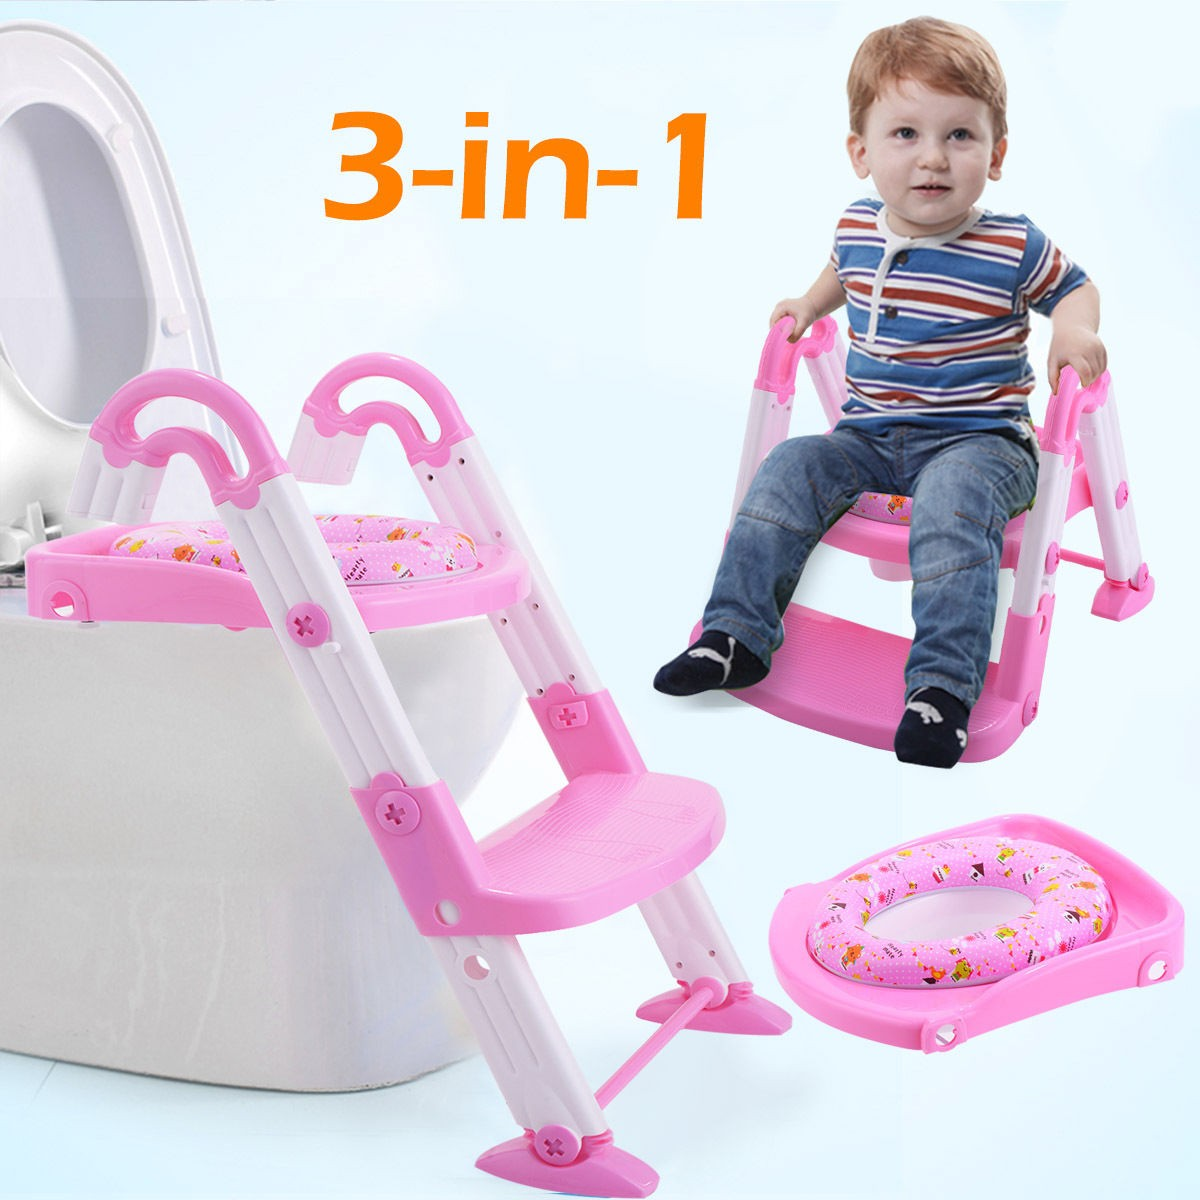 3 in 1 Baby Potty Training Toilet Chair Seat Step Ladder Trainer Toddler Pink by Apontus